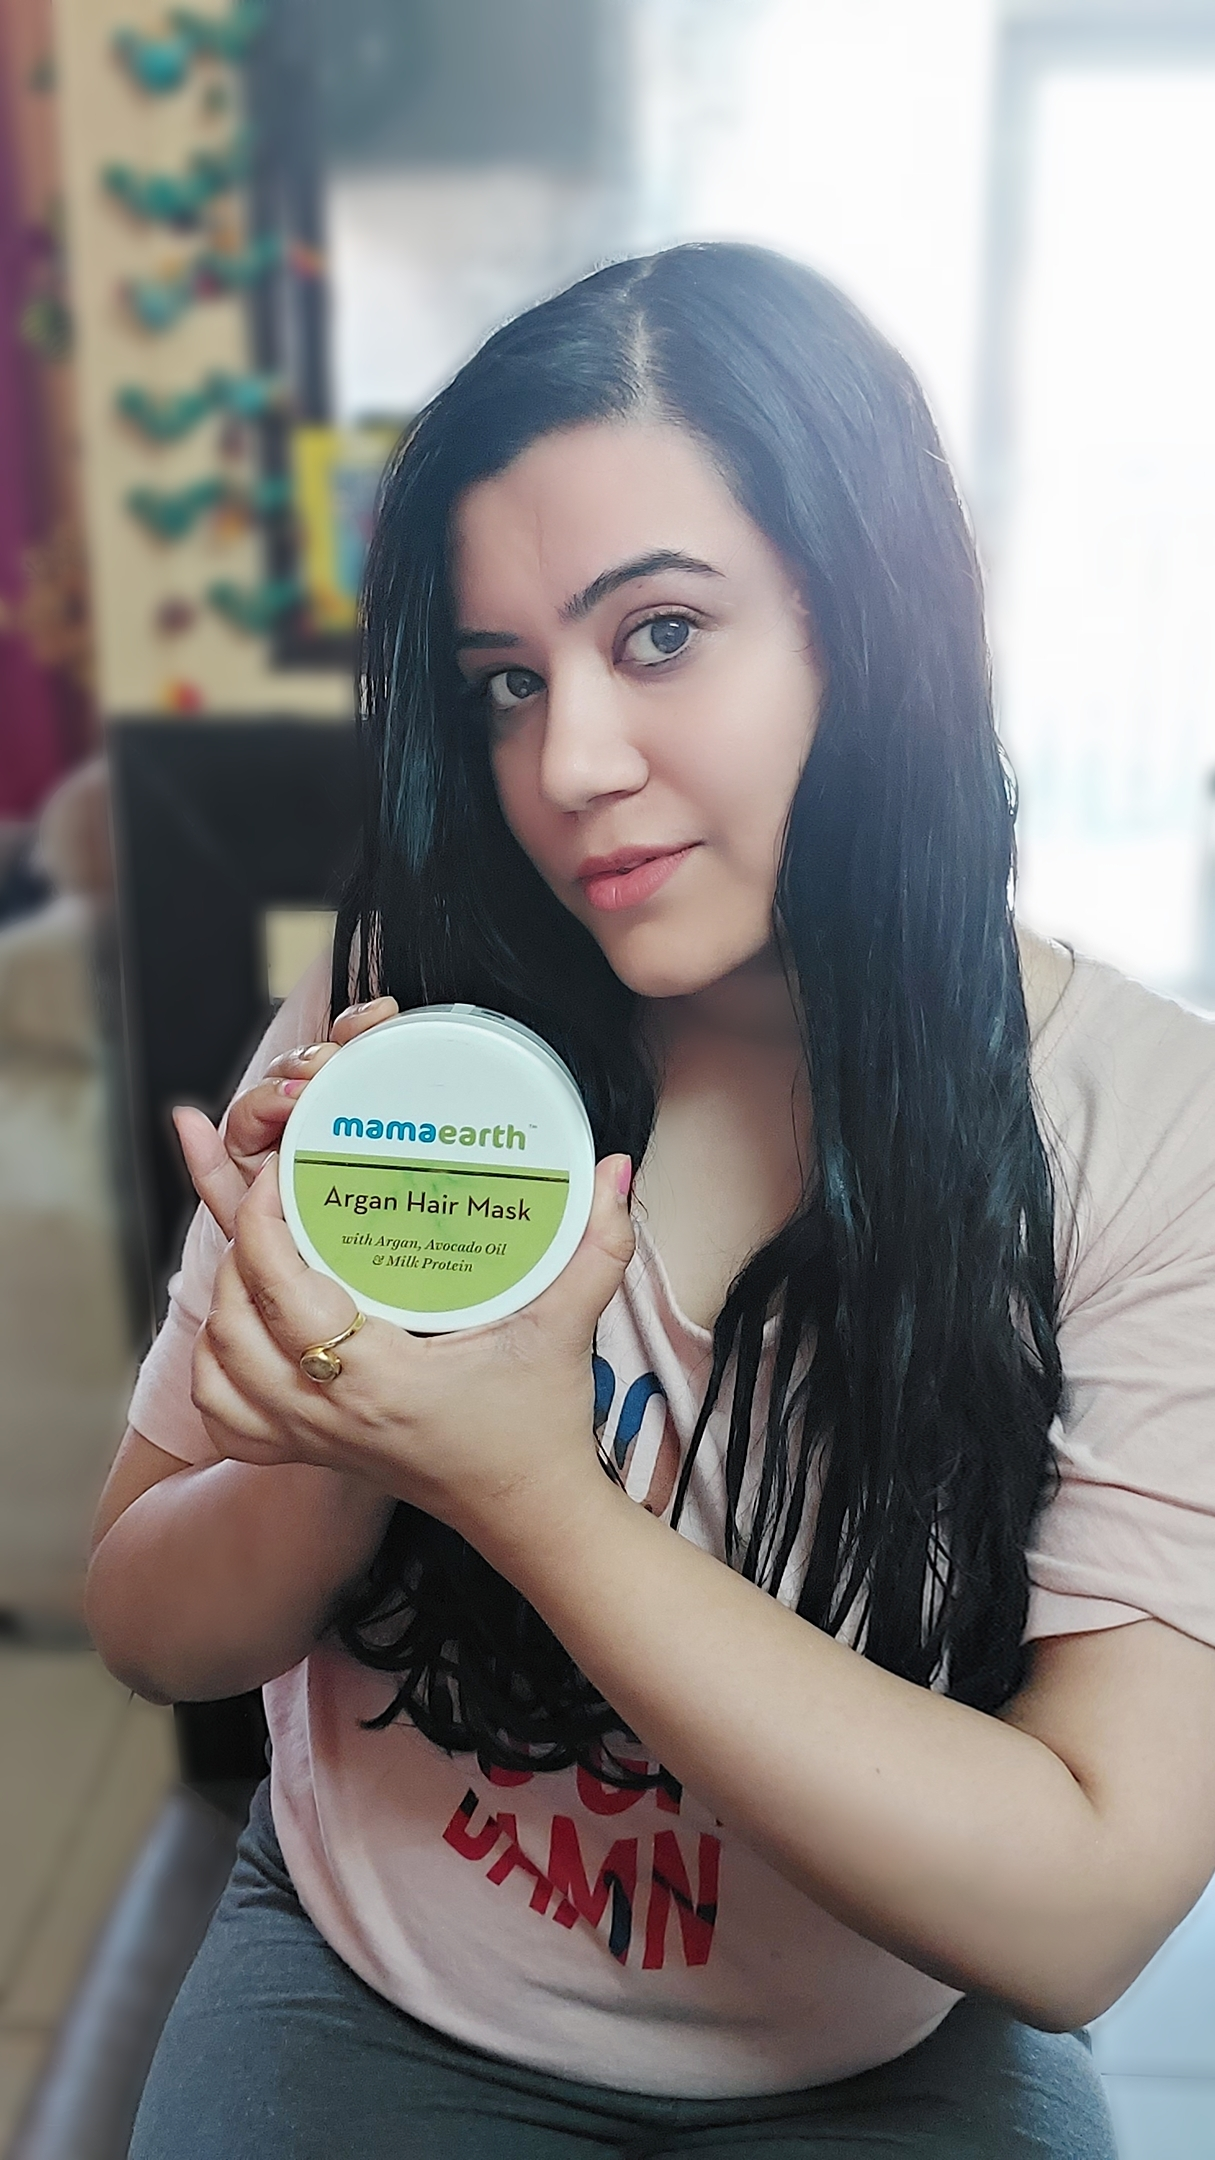 Mamaearth Argan Hair Mask pic 2-Extremely helpful for frizzy hair-By alittleflaunt